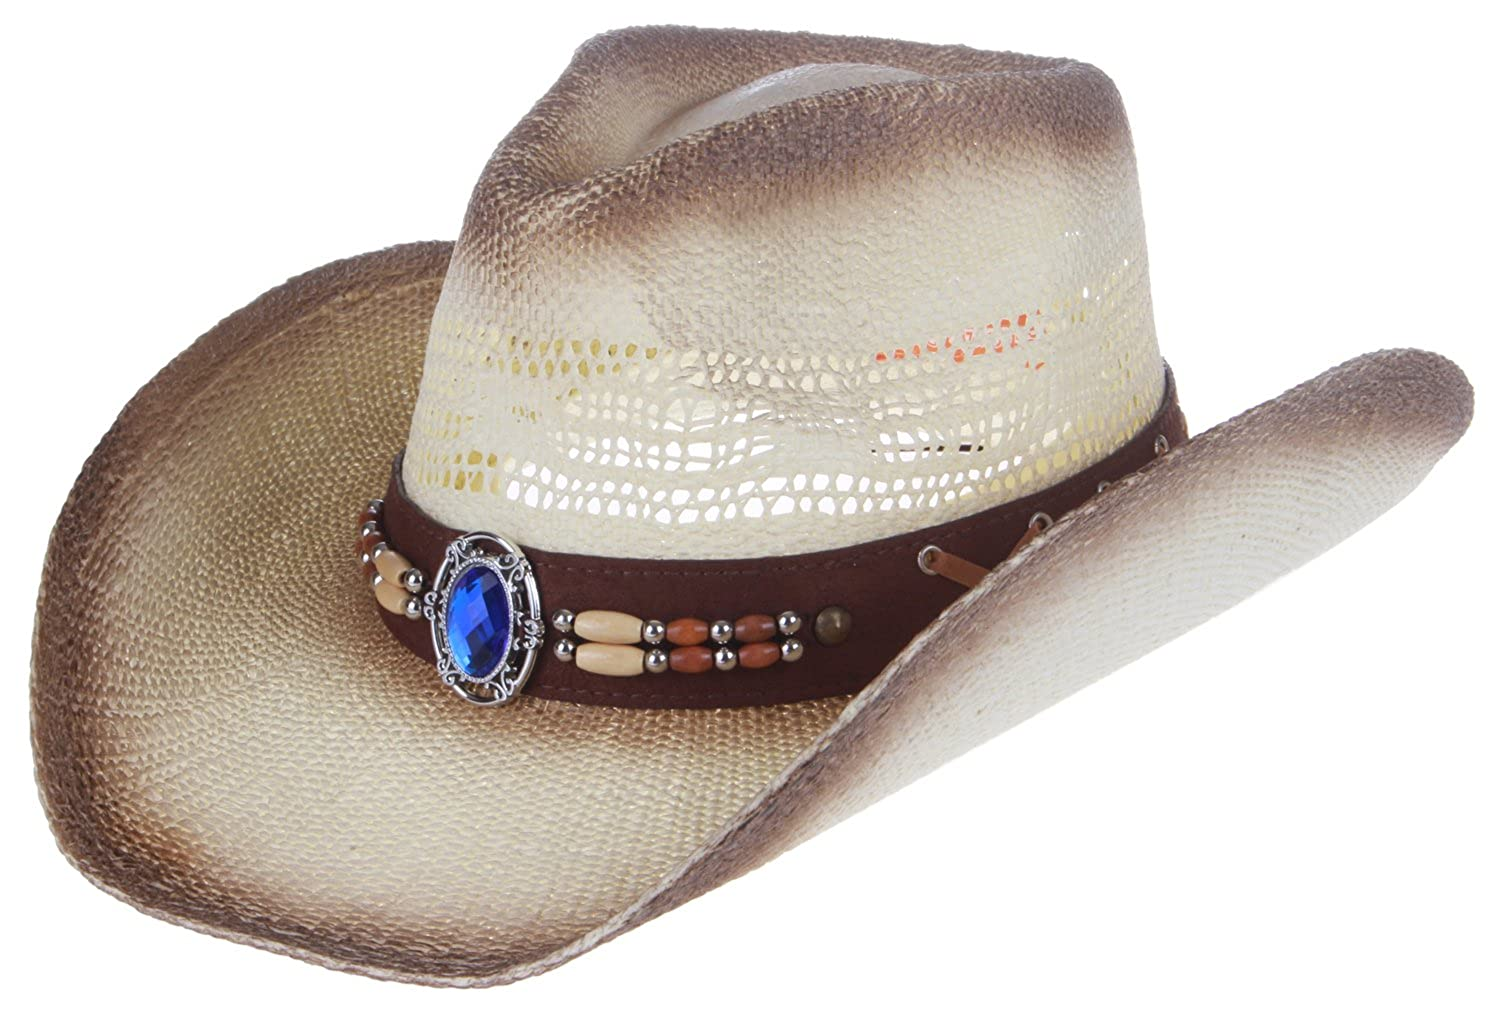 f53cf0d0ef542 Enimay Western Outback Cowboy Hat Men s Women s Style Straw Felt Canvas  Bead Blue One Size at Amazon Women s Clothing store